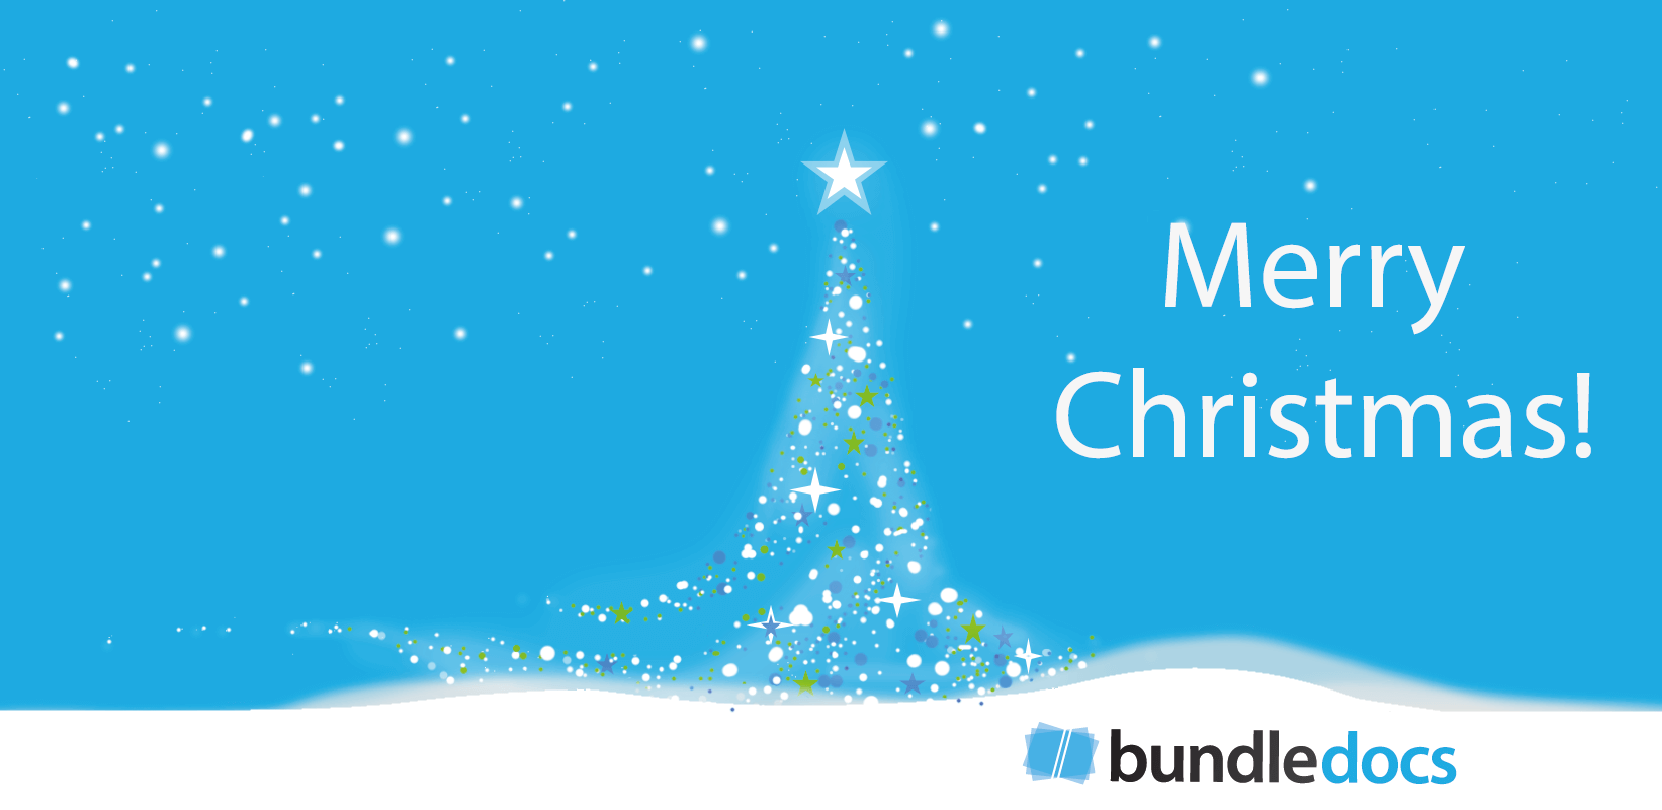 Bundledocs_Christmas_Holidays_2017.png